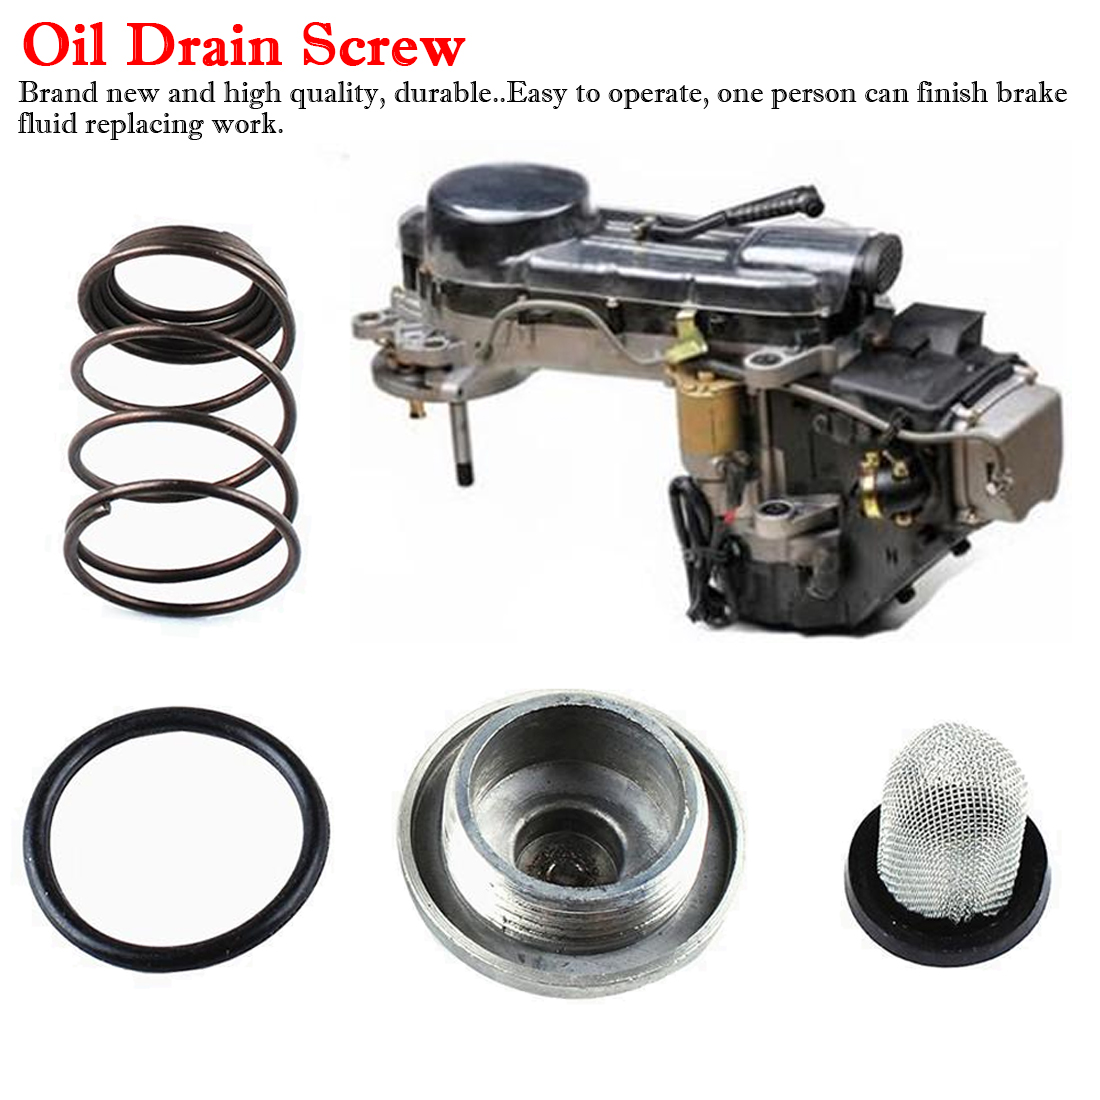 <font><b>GY6</b></font> <font><b>Engine</b></font> Kits <font><b>Parts</b></font> Oil Drain Screw Scooter 50 80 <font><b>50cc</b></font> to 150cc 125/150 Auto Car Styling Car Accessories Camping image